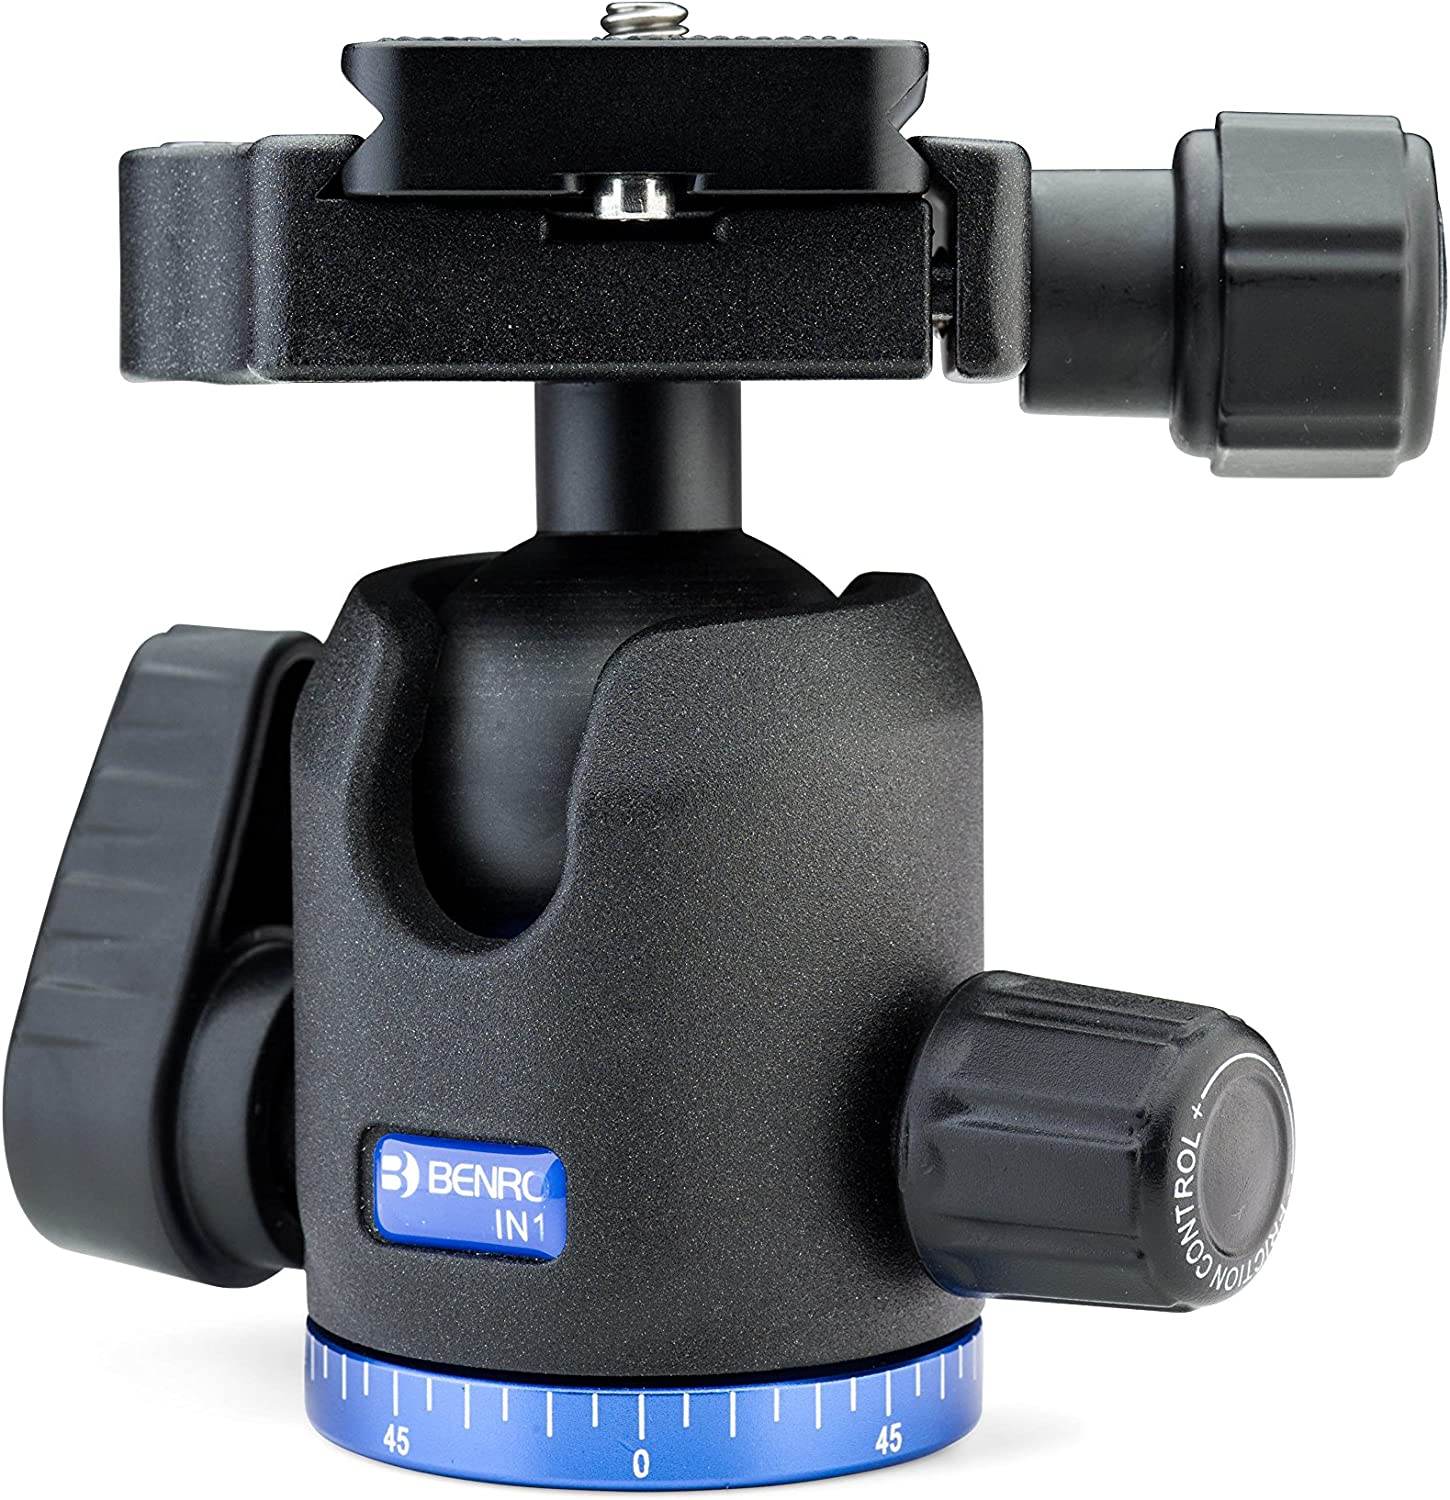 Benro Double Action Ball Head W Pu60 Quick Release Plate In1